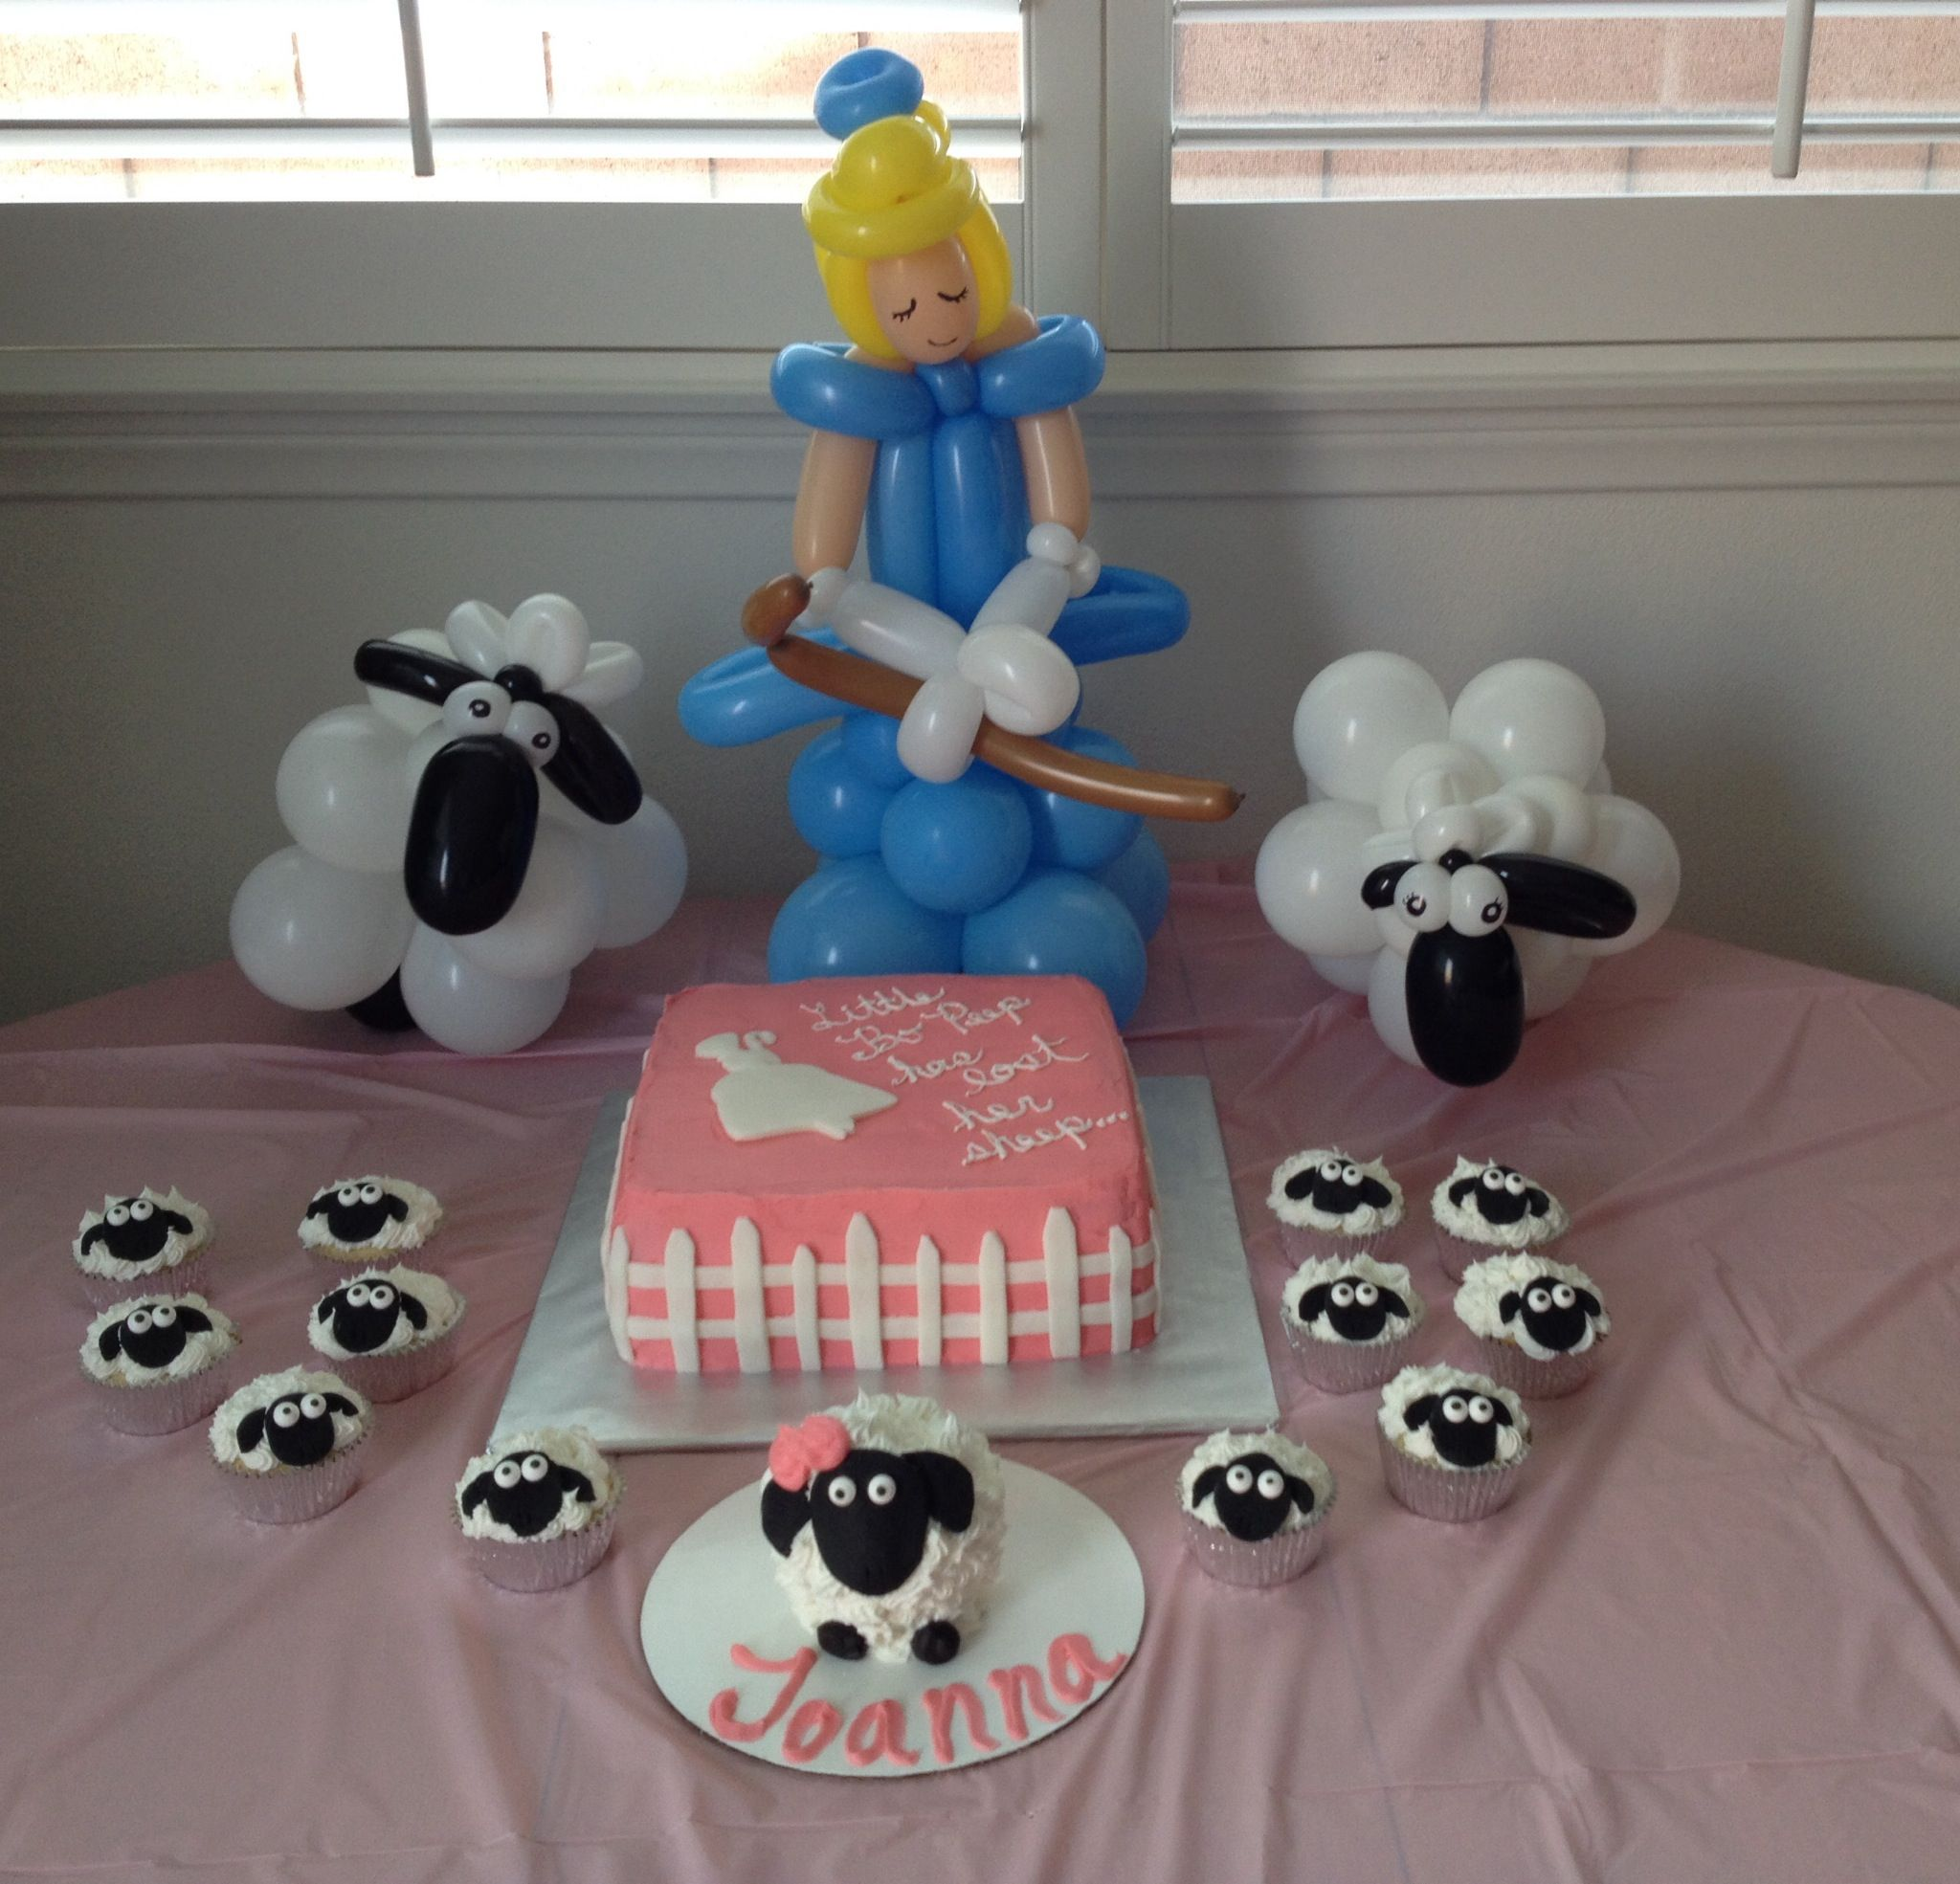 Little Bo Peep Cake Balloons Surrounded By Cupcakes And